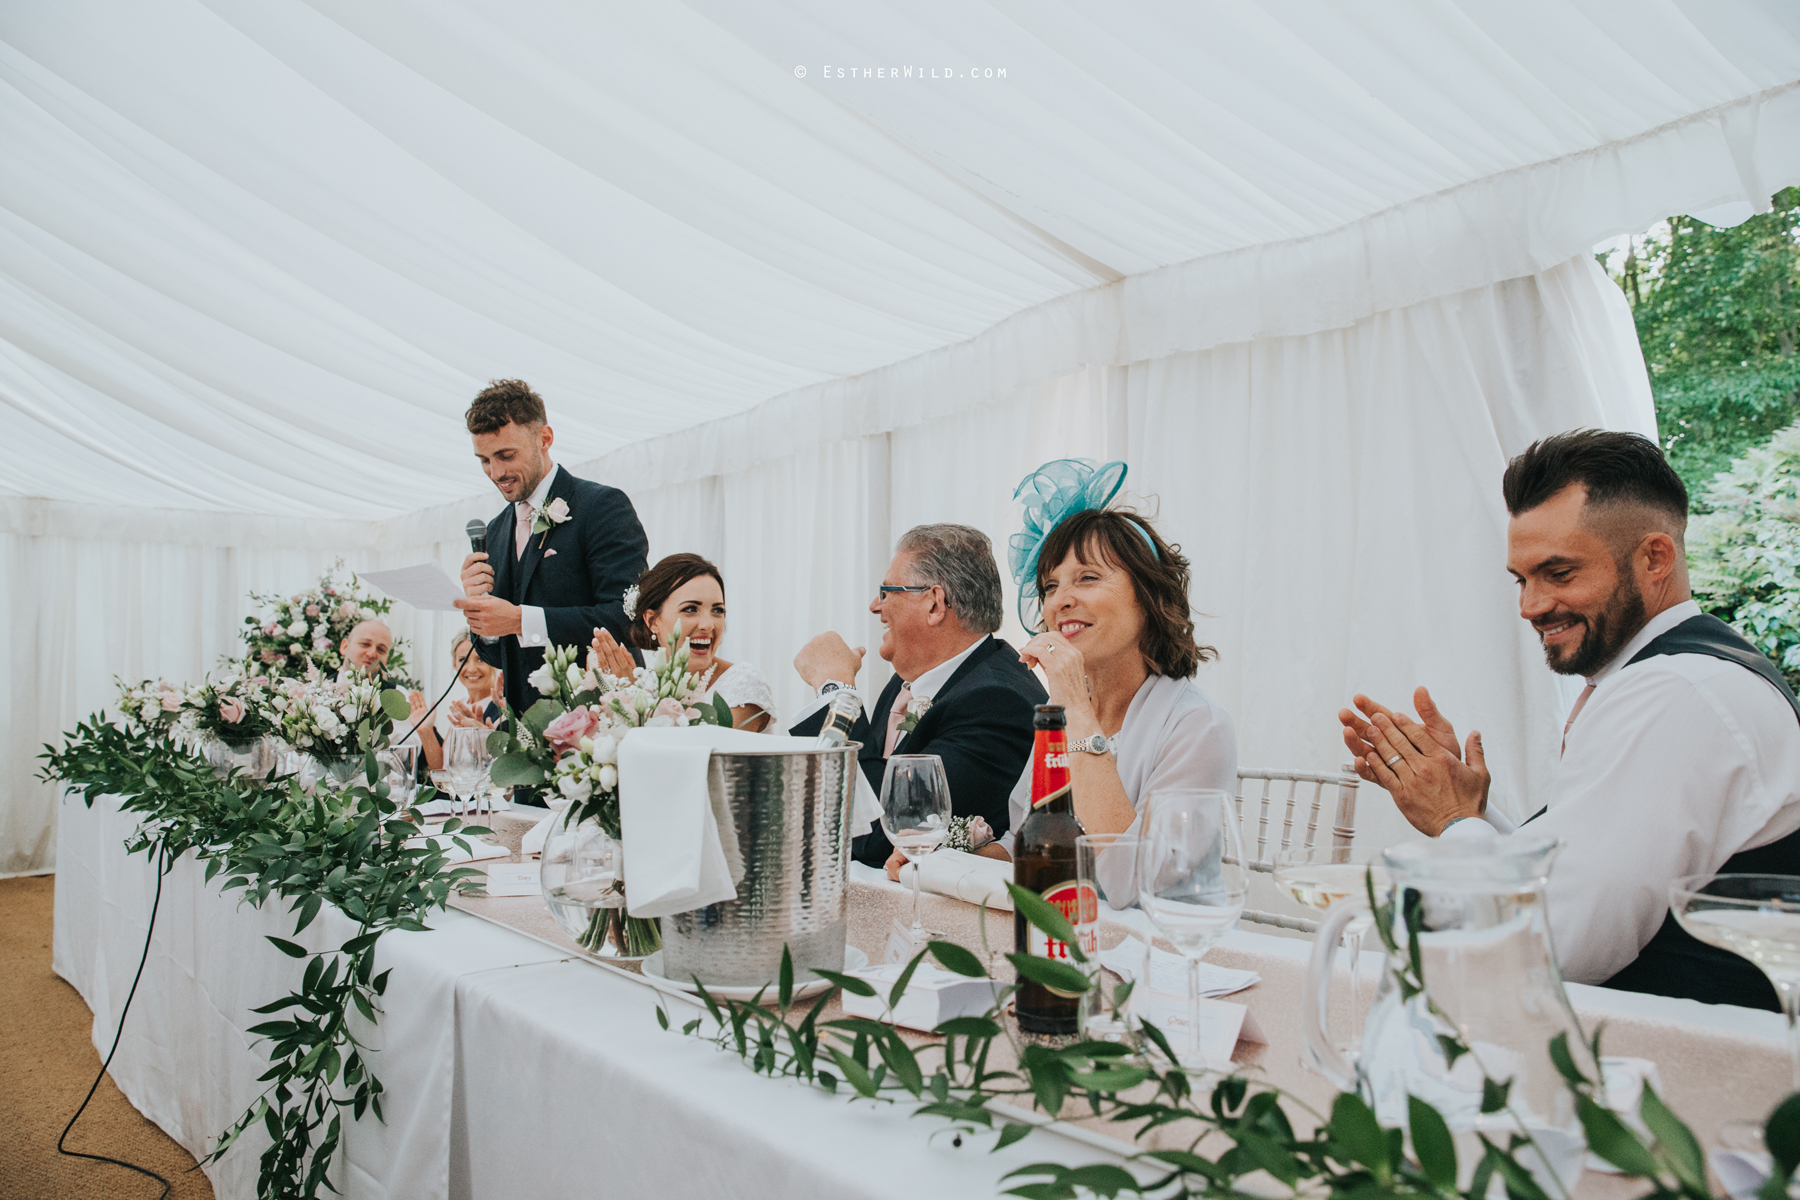 Wootton_Wedding_Copyright_Esther_Wild_Photographer_IMG_2620.jpg